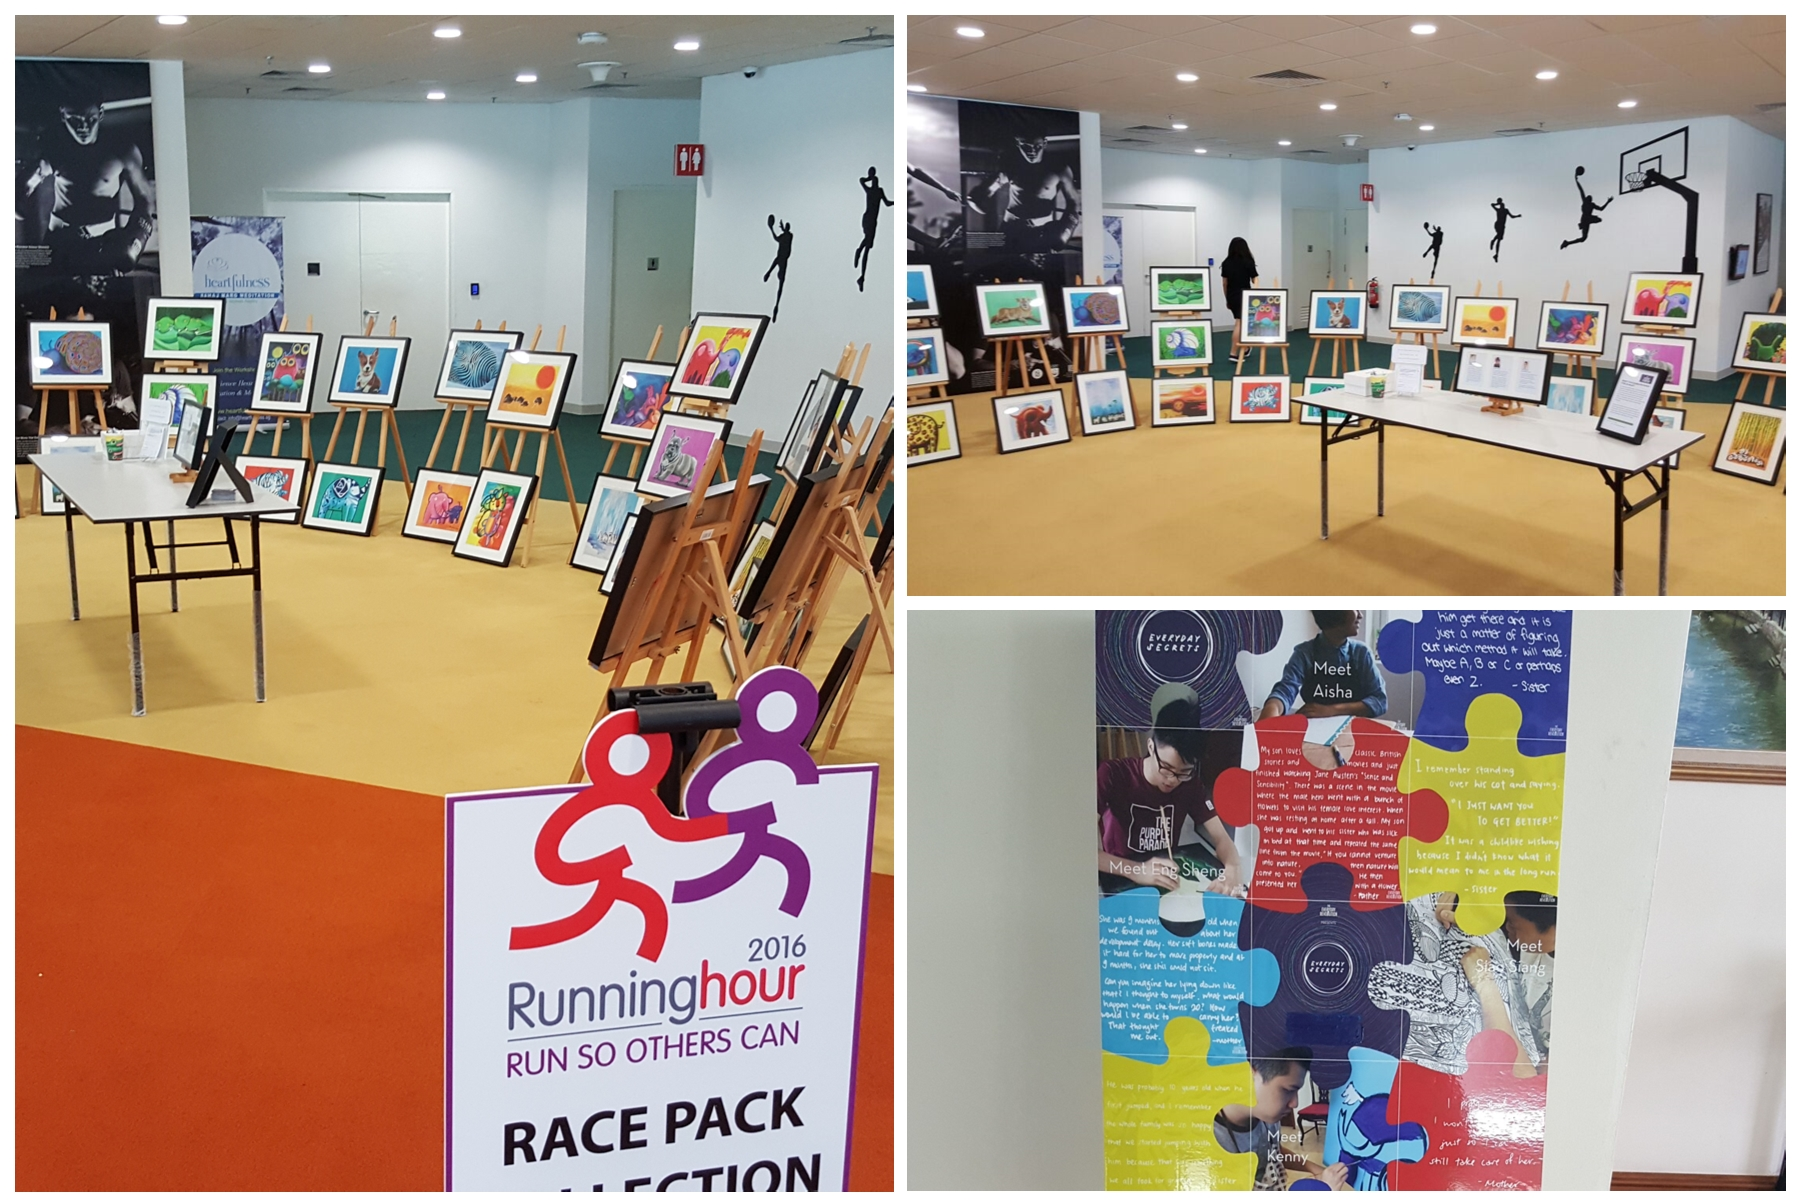 TER @ event with RunningHour - We joined our partner Running Hour in their uniquely Empathy Run alongside the special needs.Here we showcased their talents / works